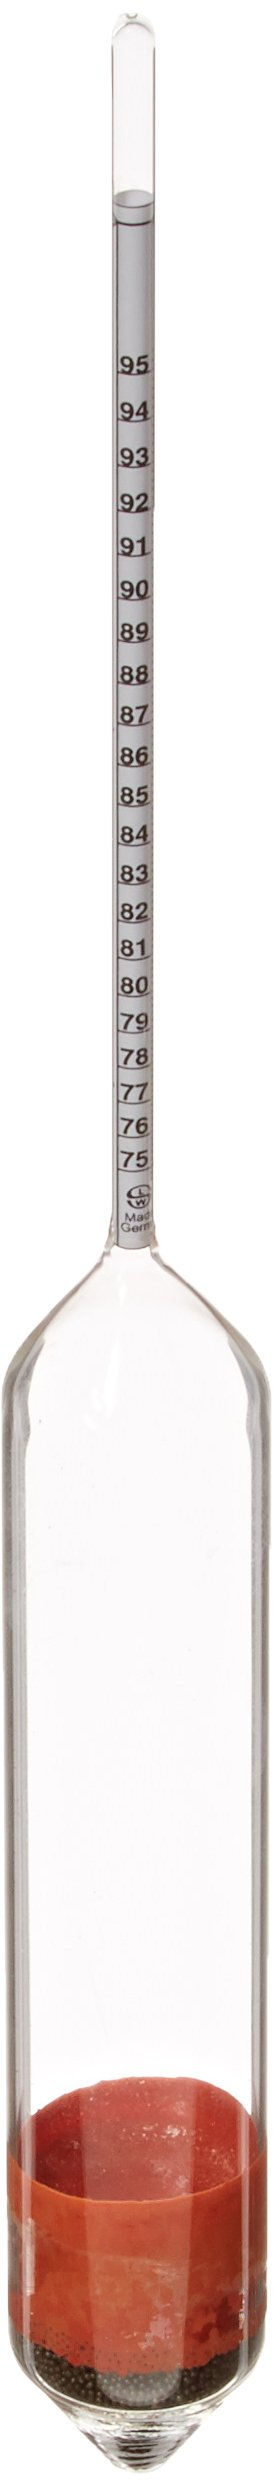 Thermco GW2605 IRS Specifications Proof Scale Plain Form Alcohol Hydrometer, 75 to 95% Proof Range, 0.2% Subdivision, K IRS Size, 305mm Length by THERMCO